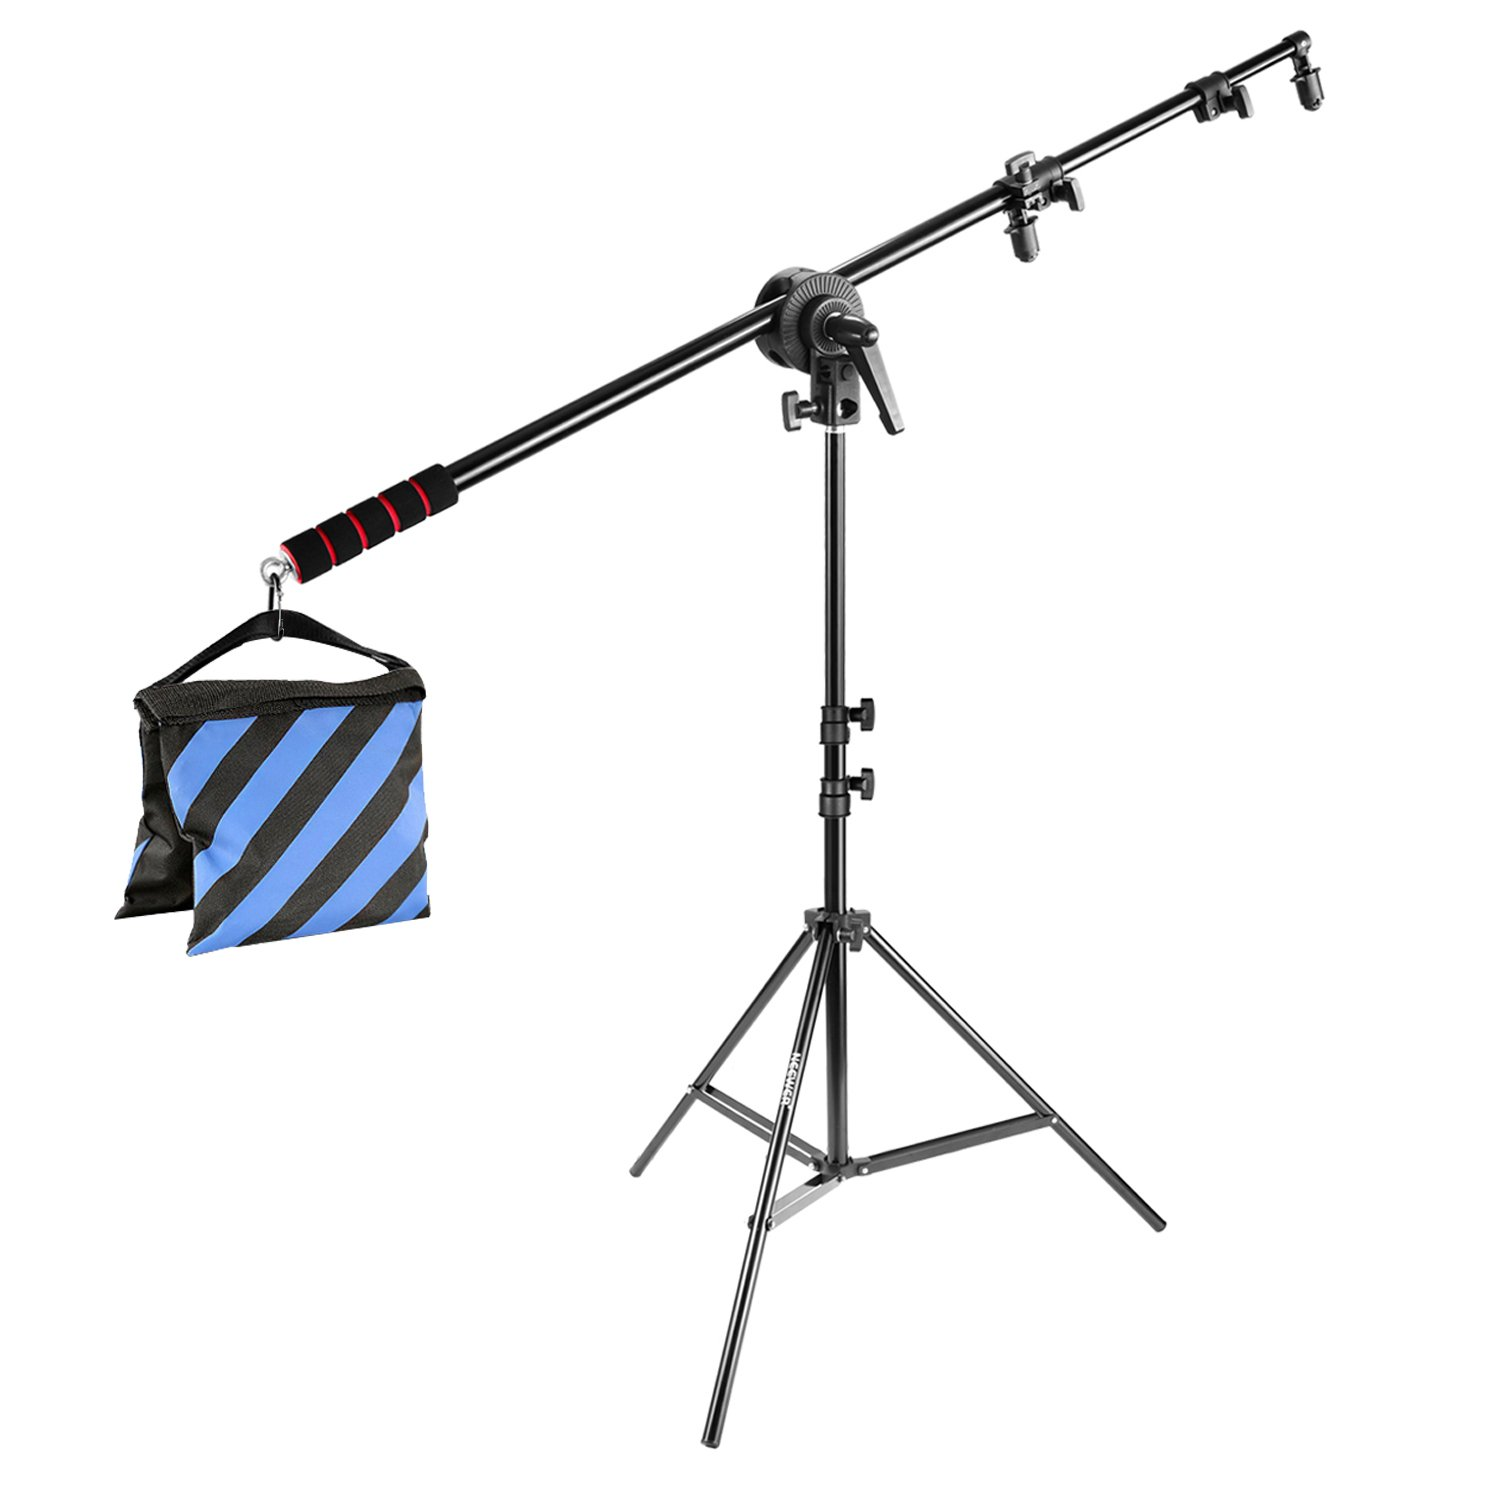 Neewer Photo Studio Lighting Reflector Boom Arm Stand Kit:73 inches/185 centimeters Reflector Holder Bracket with Rubber Handle Grip, 75 inches/190 centimeters Light Stand,Adapter Clamp Pivot, Sandbag